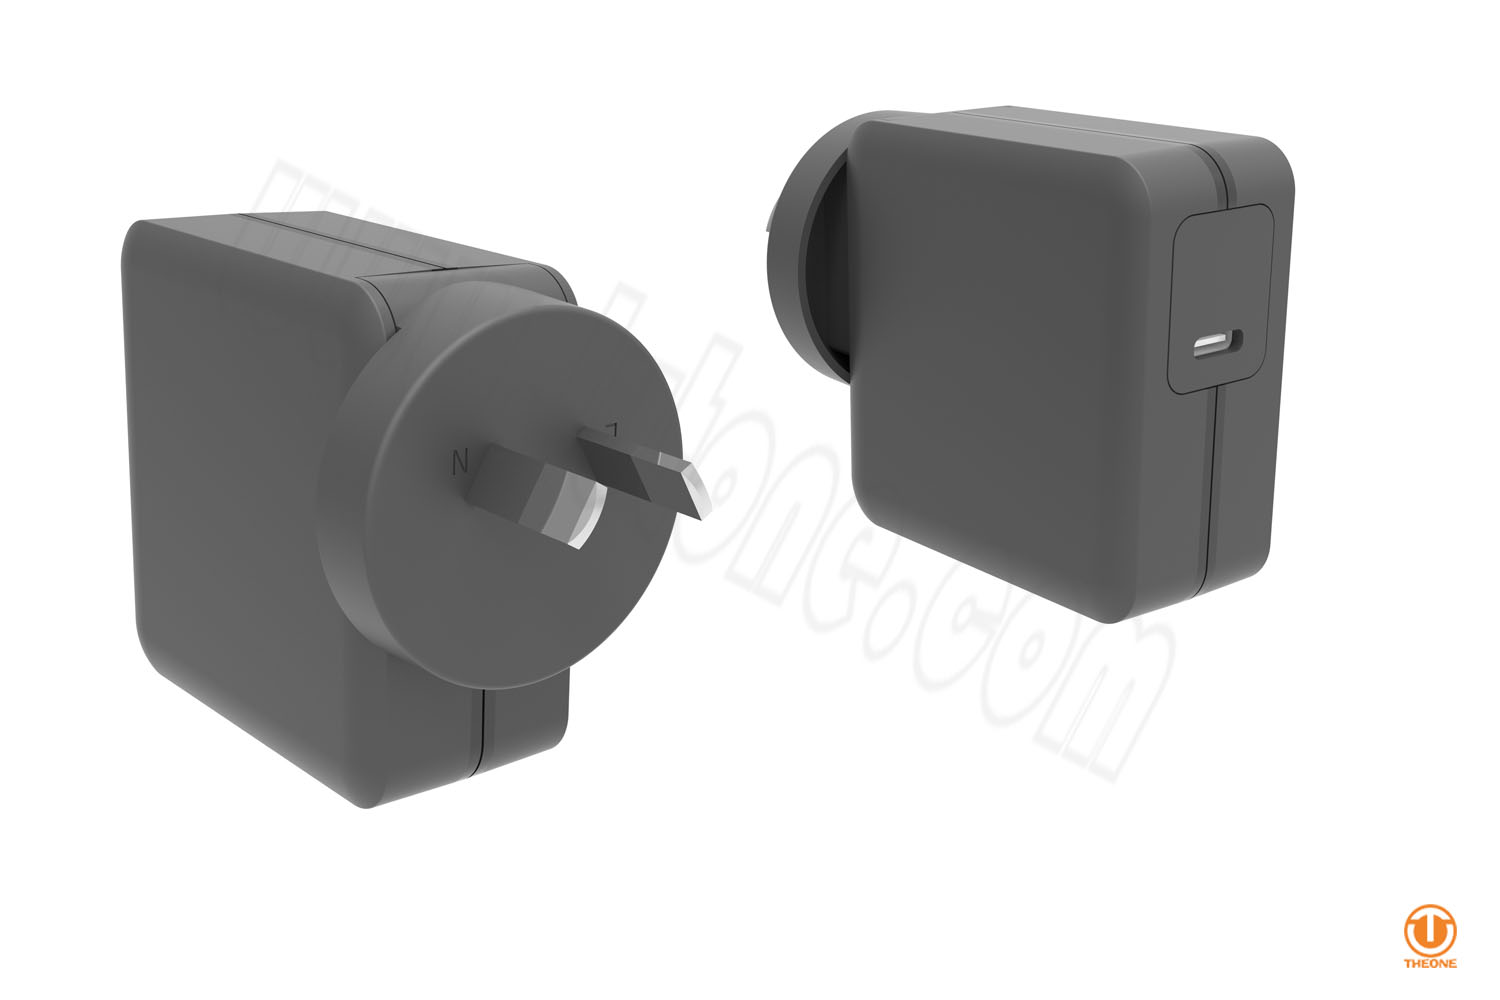 tp301c-5 typec charger